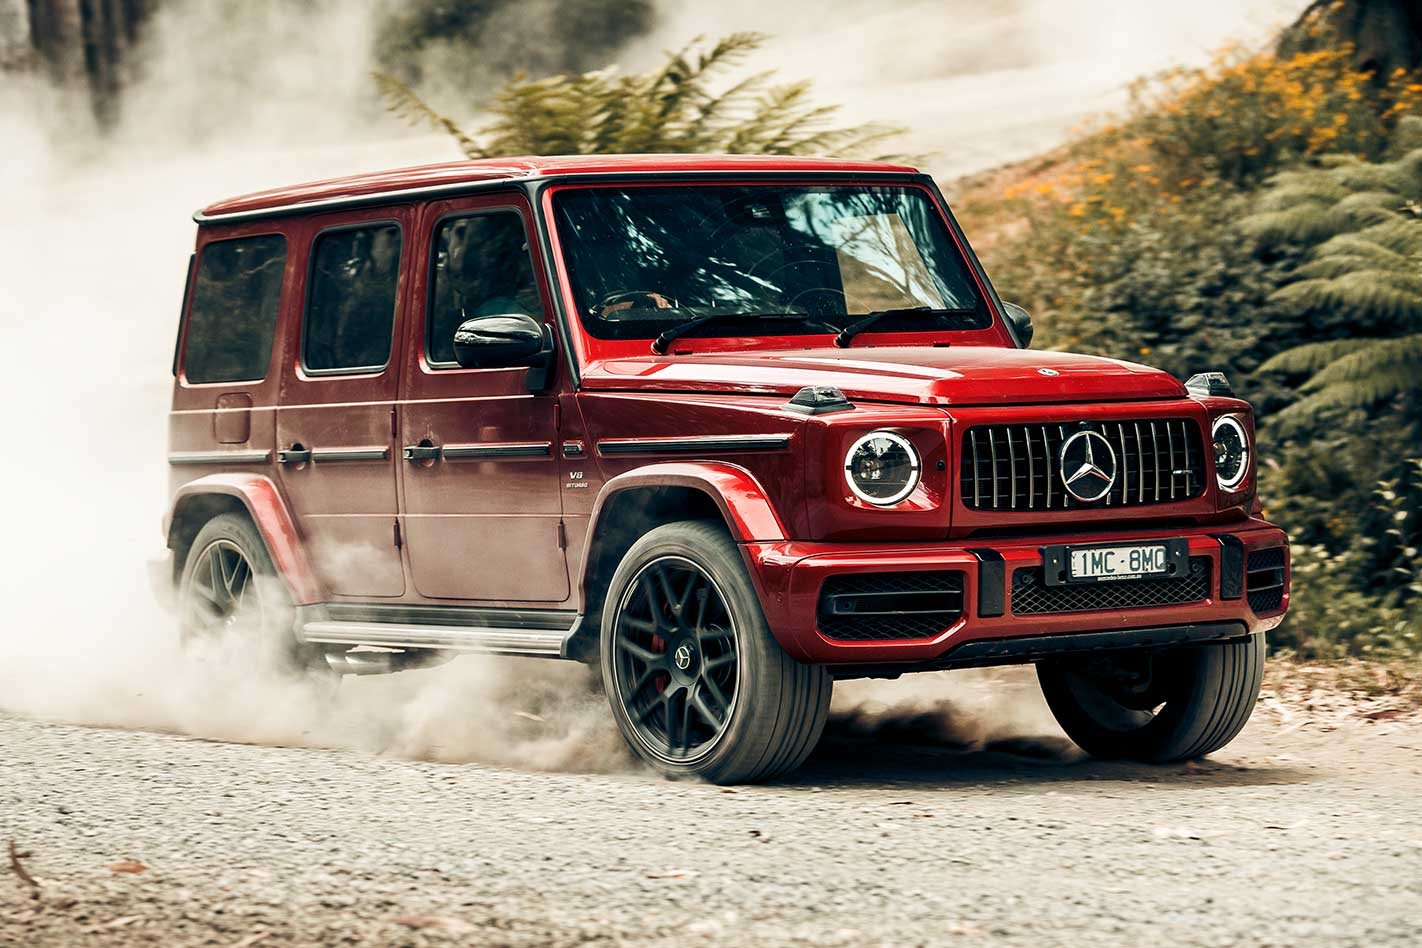 2019 Mercedes Amg G63 First Drive 4x4 Review